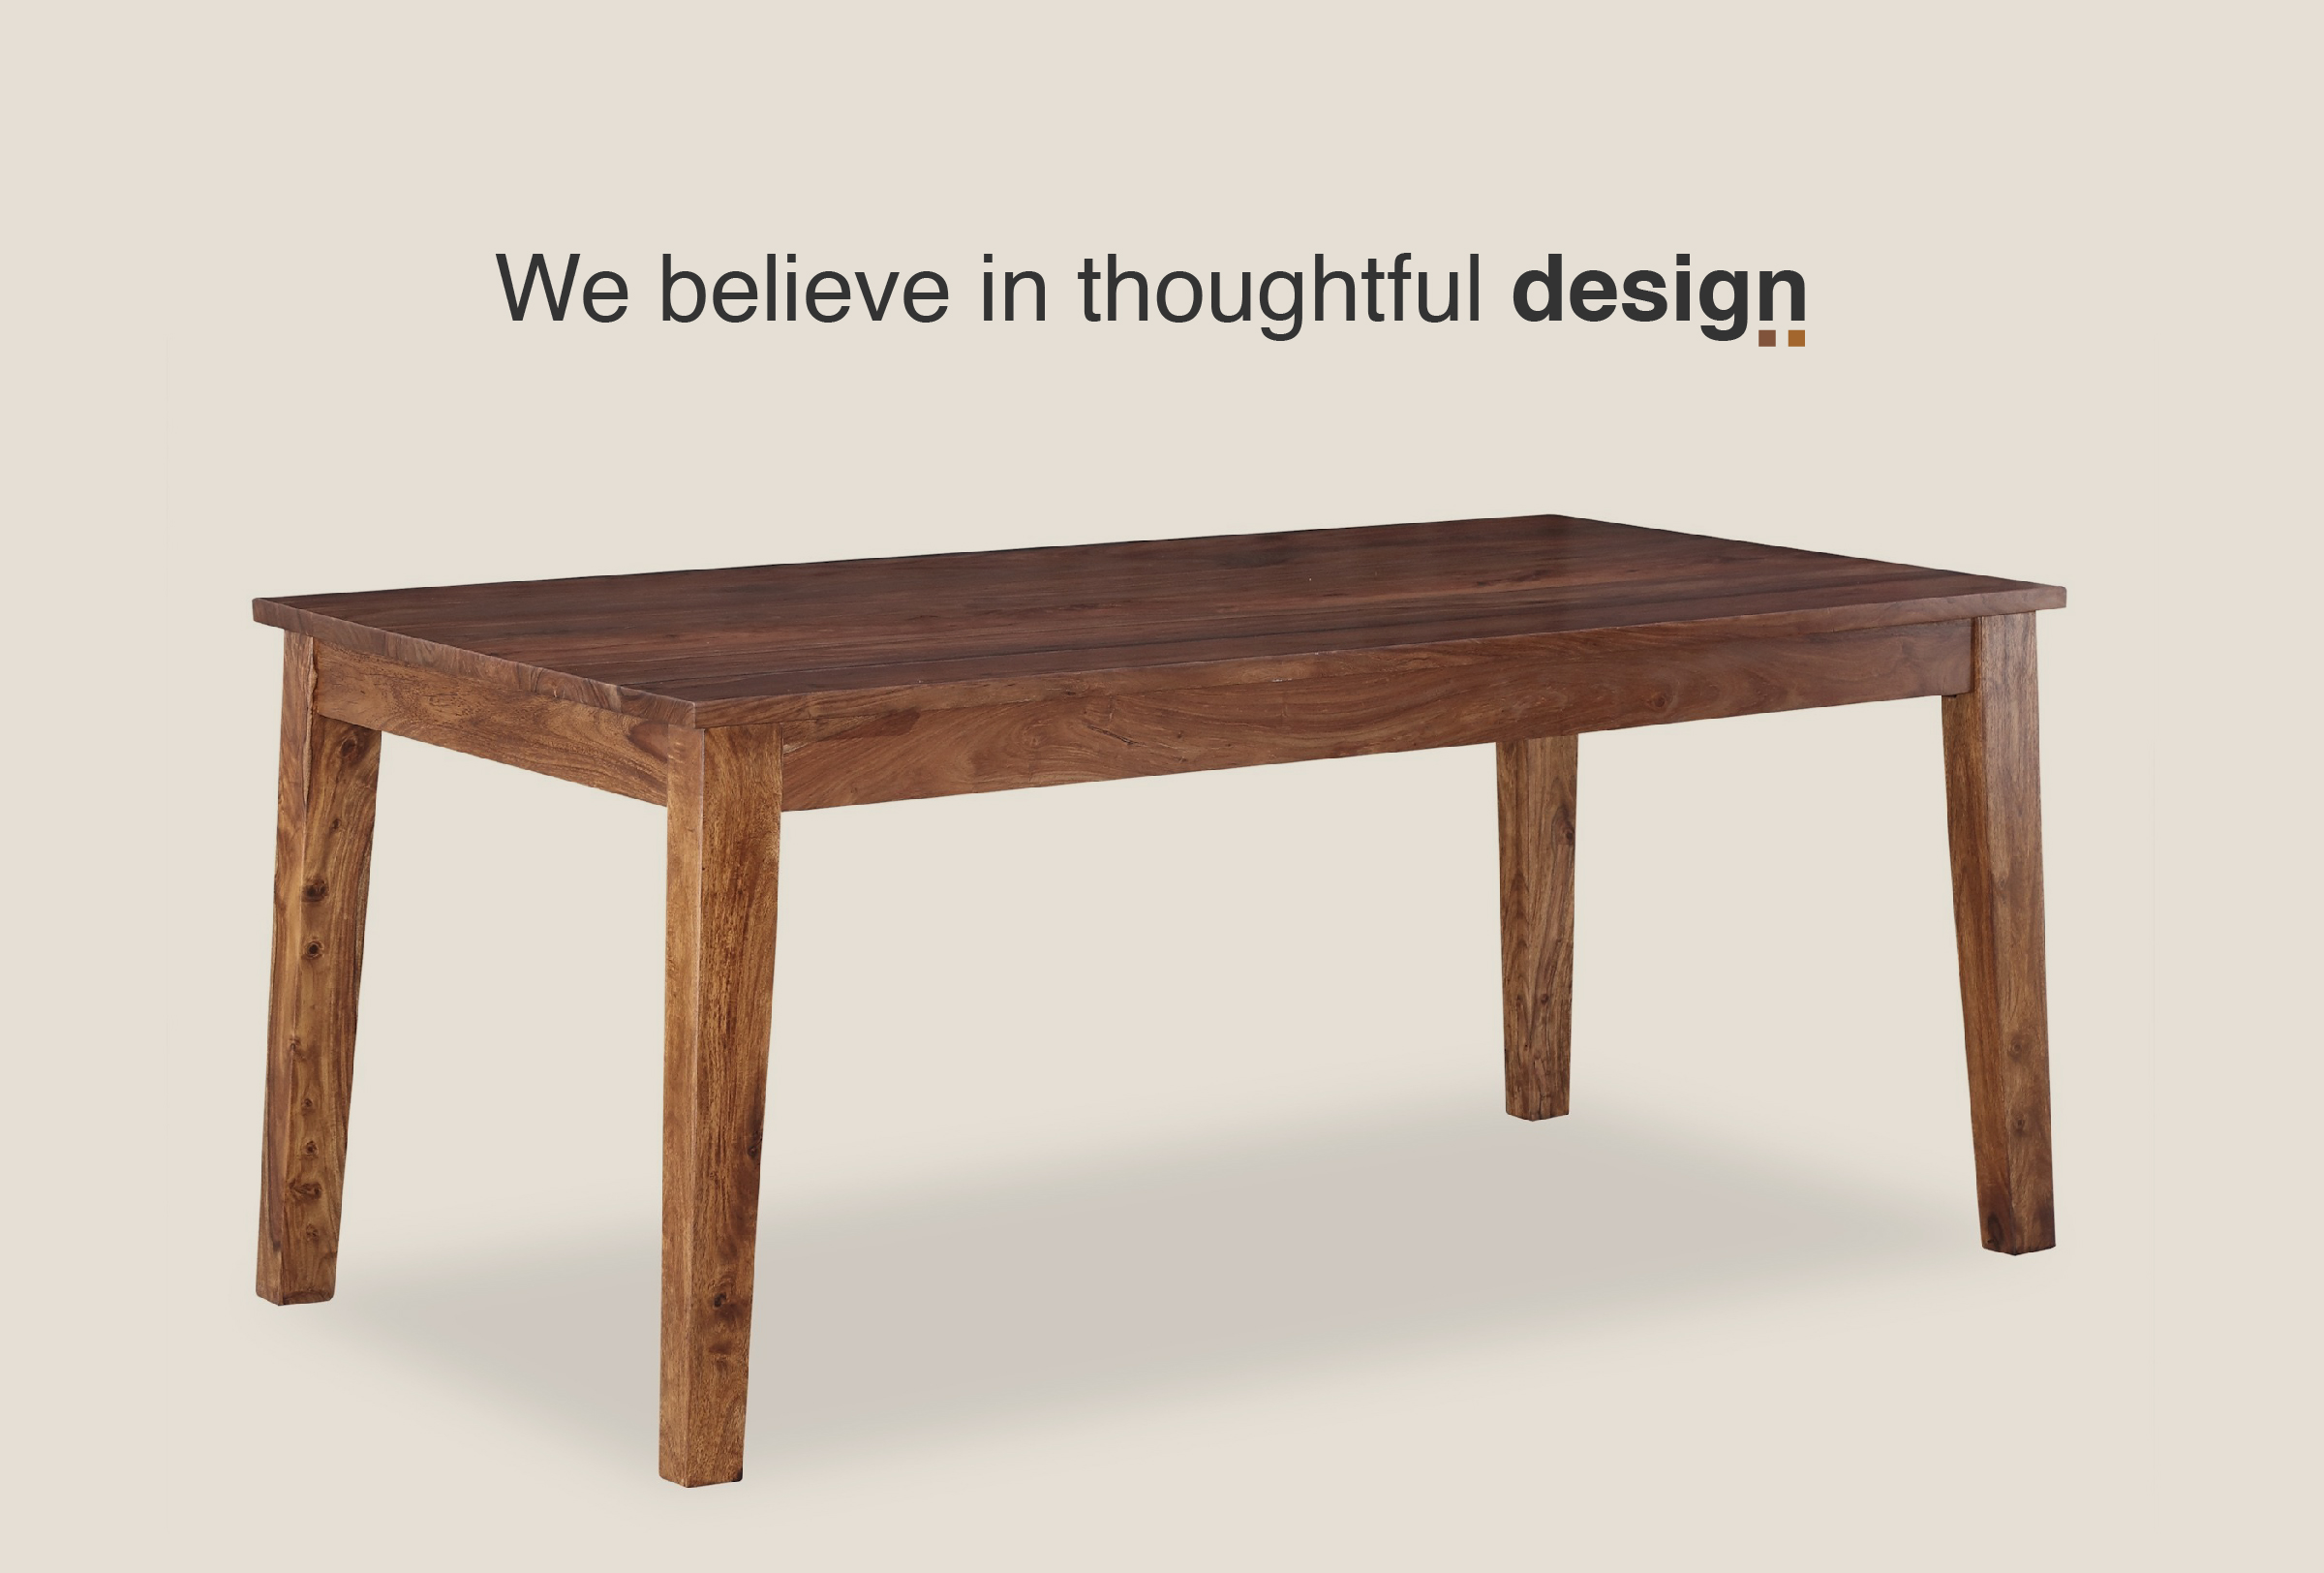 We belive in thoughtful design